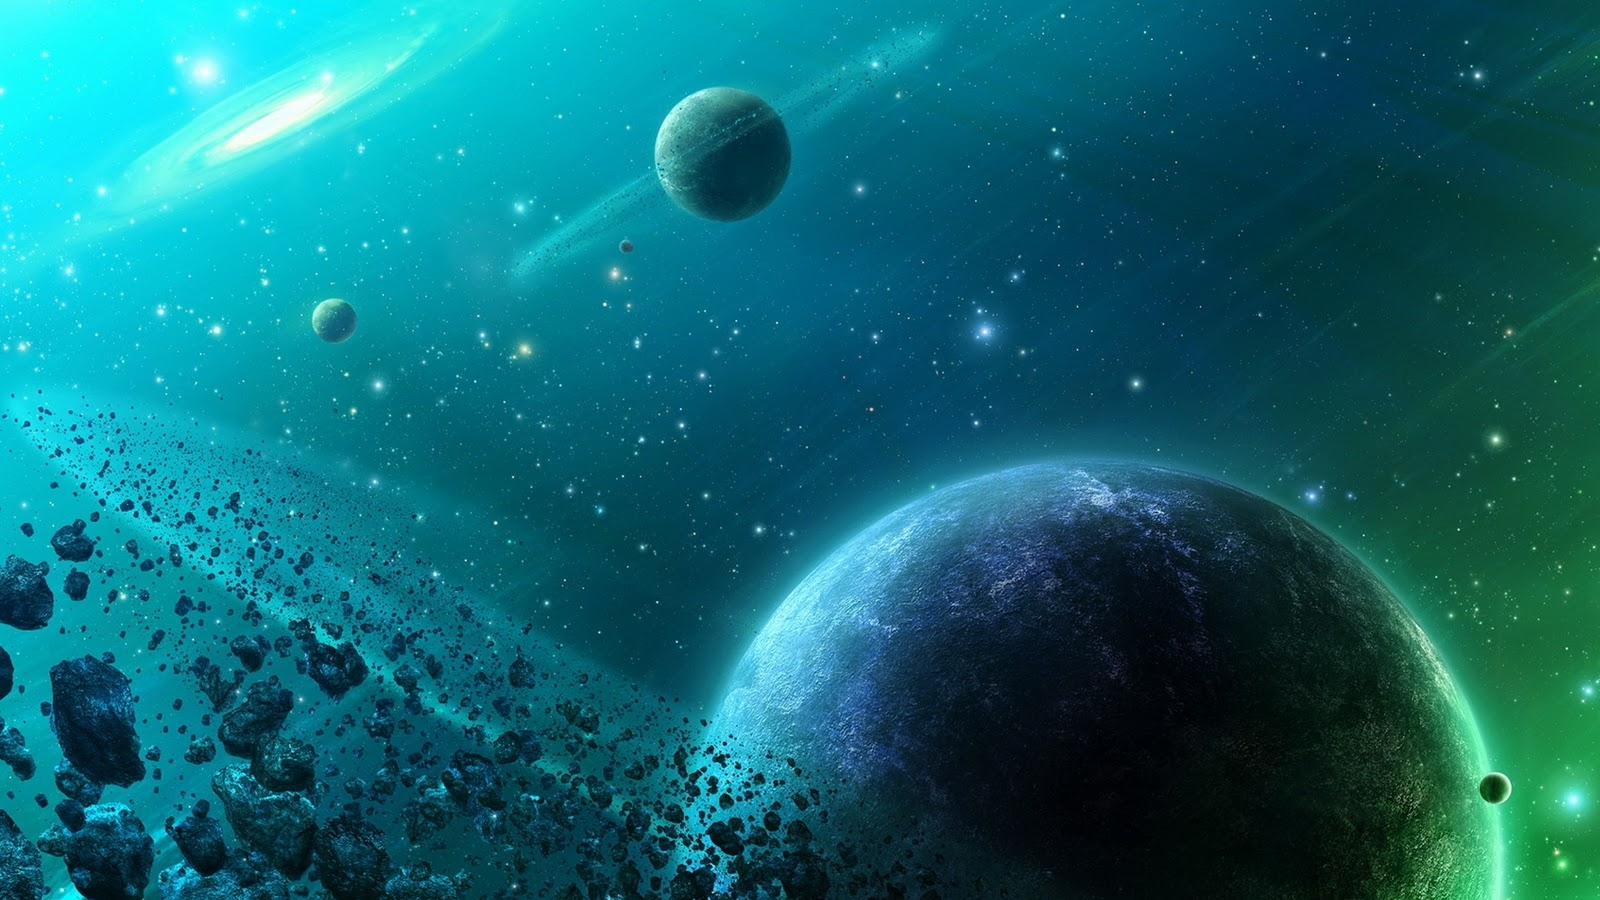 space desktop wallpaper backgrounds - photo #42